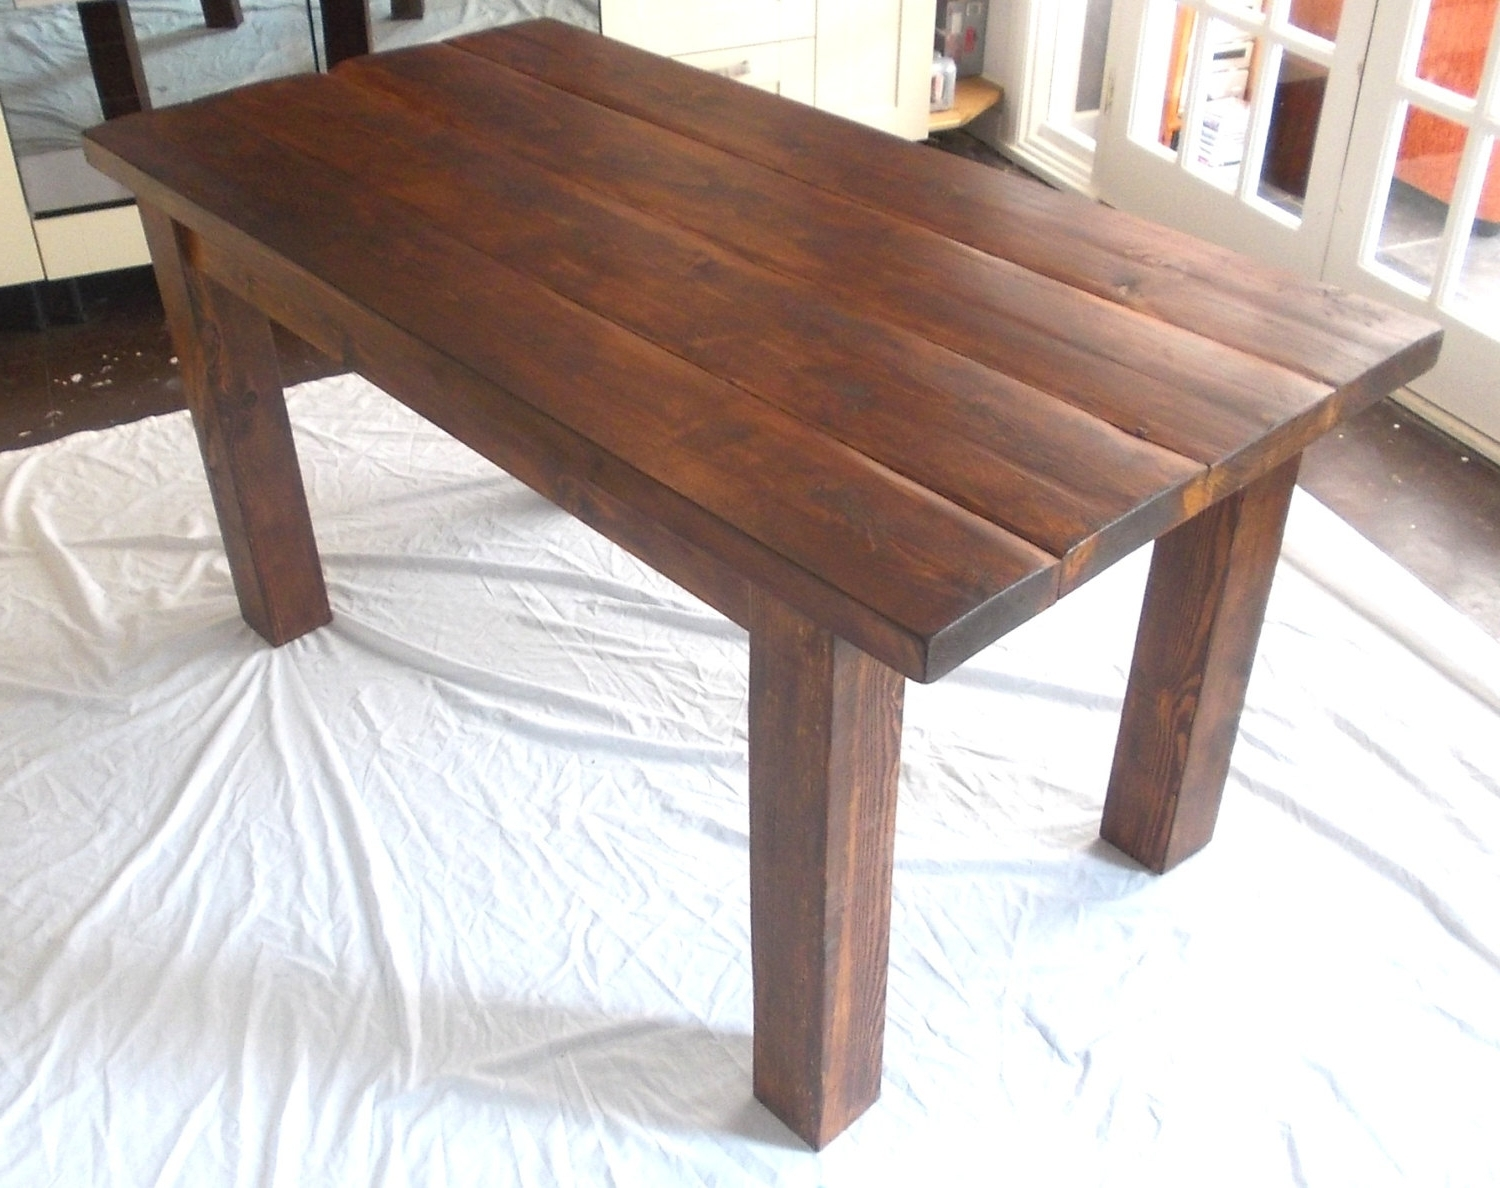 2017 Solid Dark Wood Dining Tables Pertaining To Rustic Solid Wood Plank Kitchen Dining Table Stained In Dark Black (View 22 of 25)